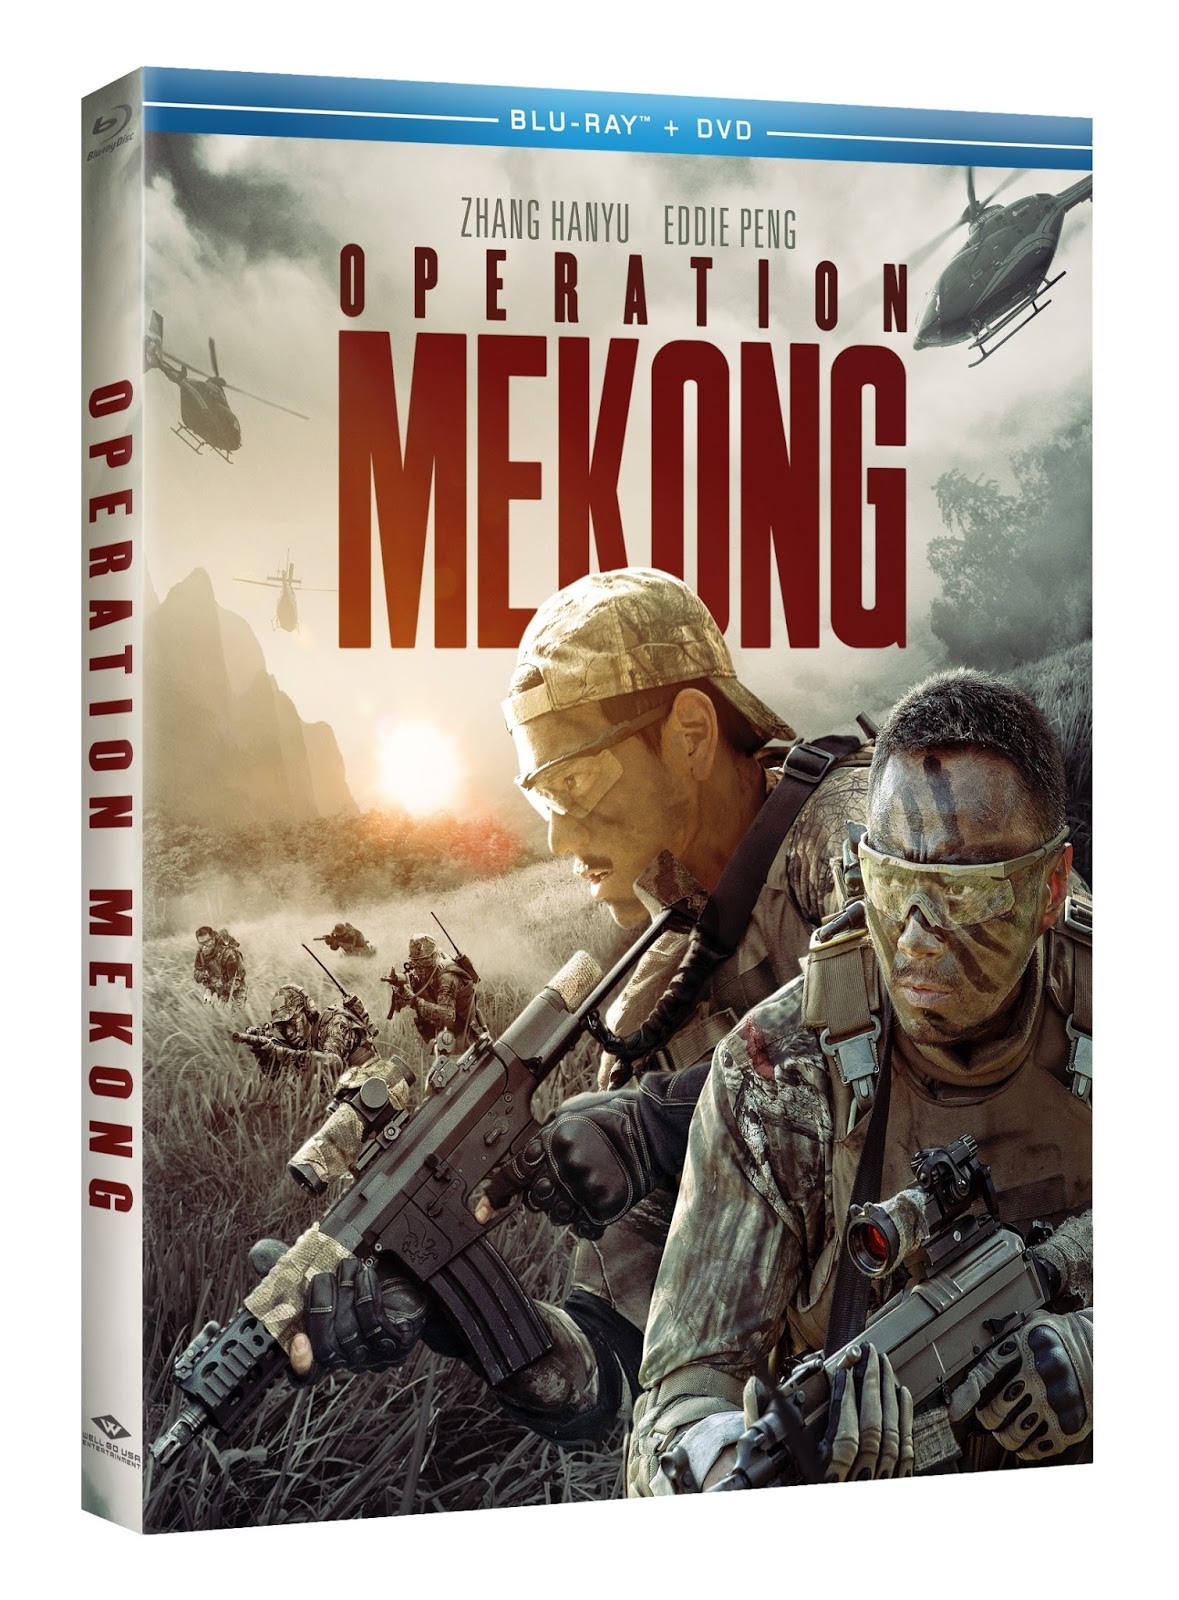 OPERATION MEKONG Announces Its U.S. Summer Release!